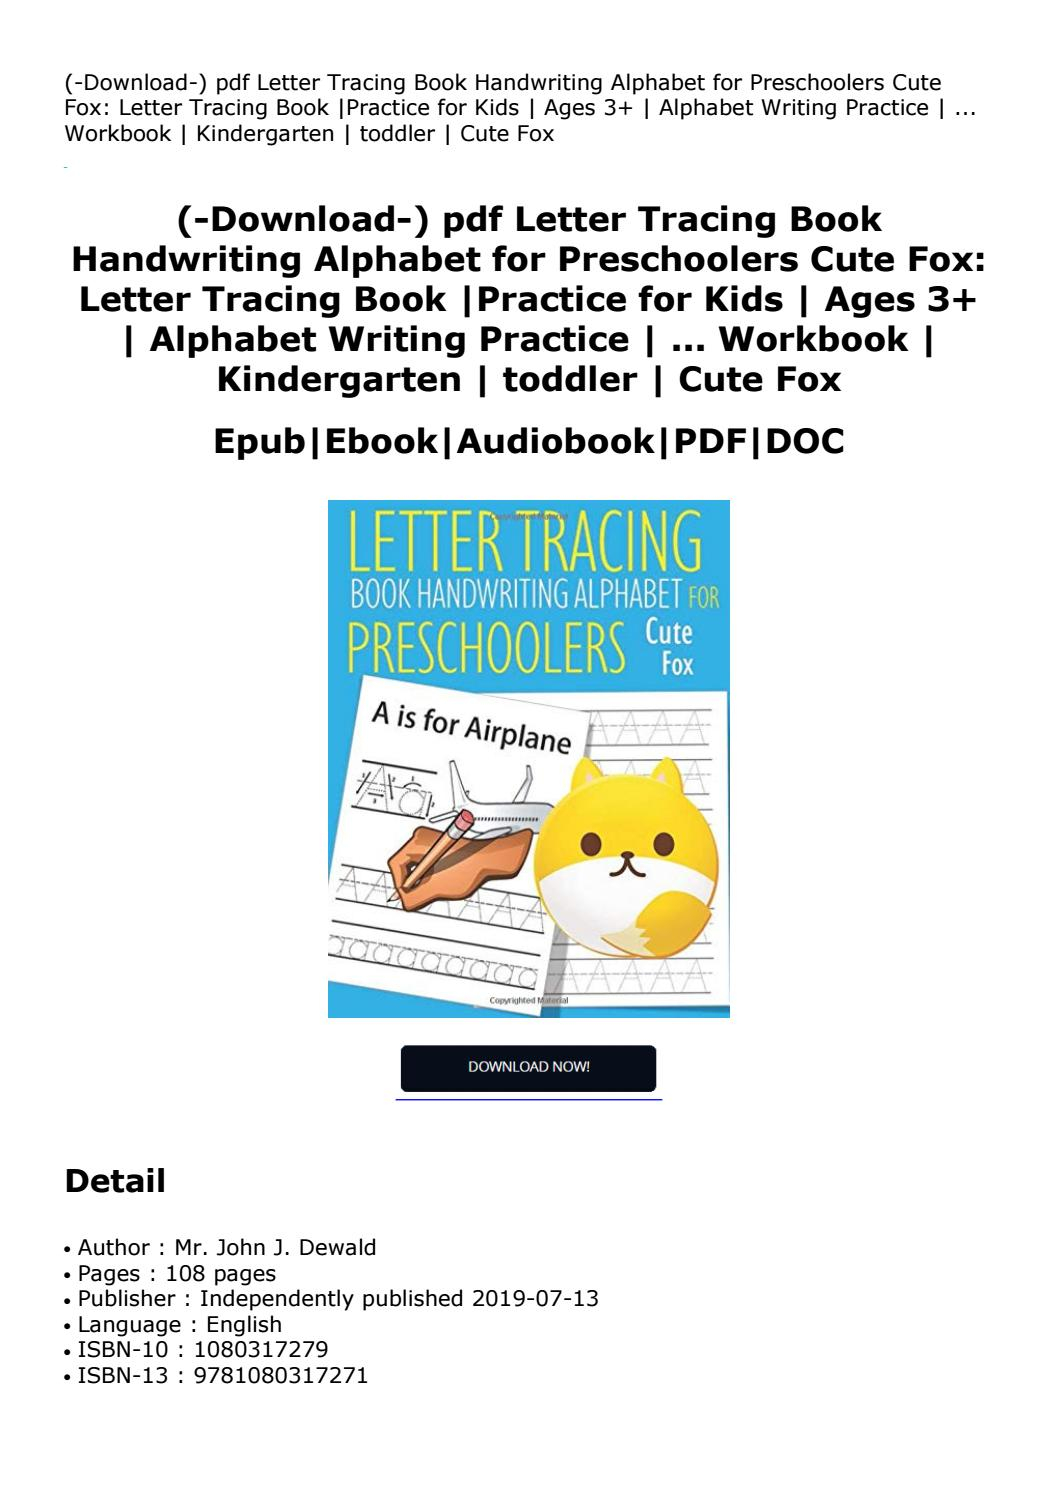 Download-) Pdf Letter Tracing Book Handwriting Alphabet For